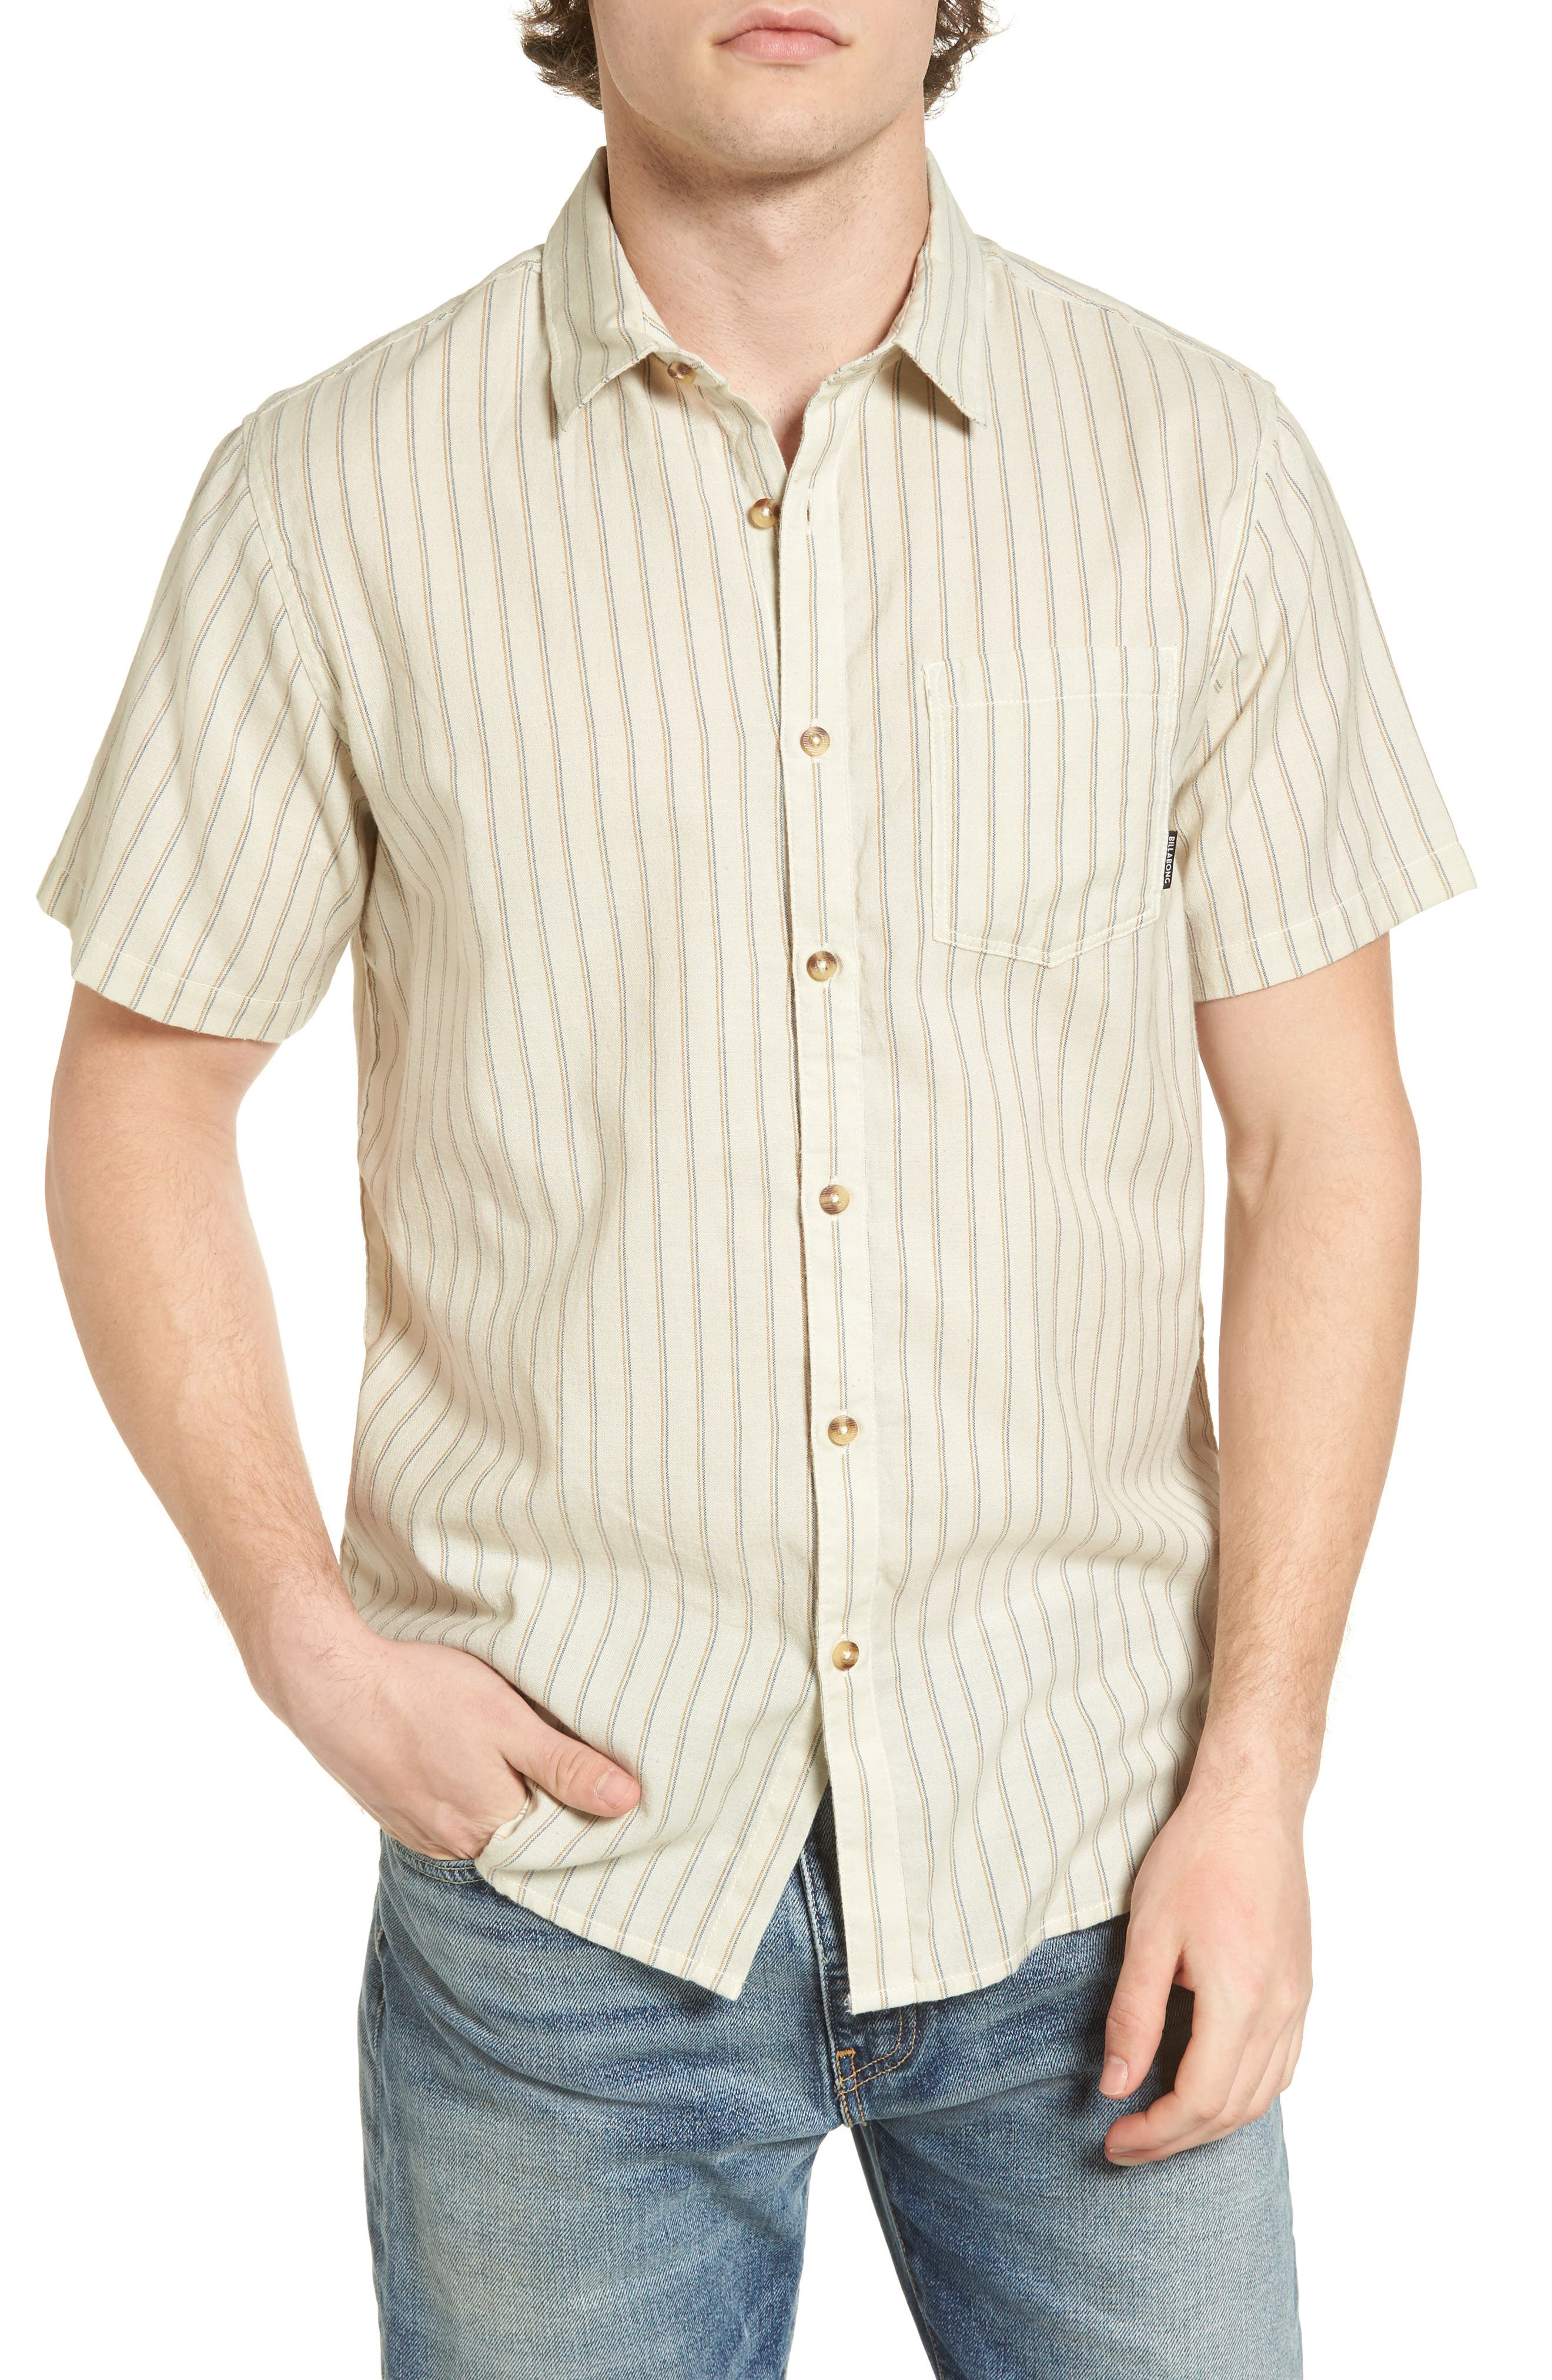 Kelso Tailored Fit Stripe Shirt,                         Main,                         color,